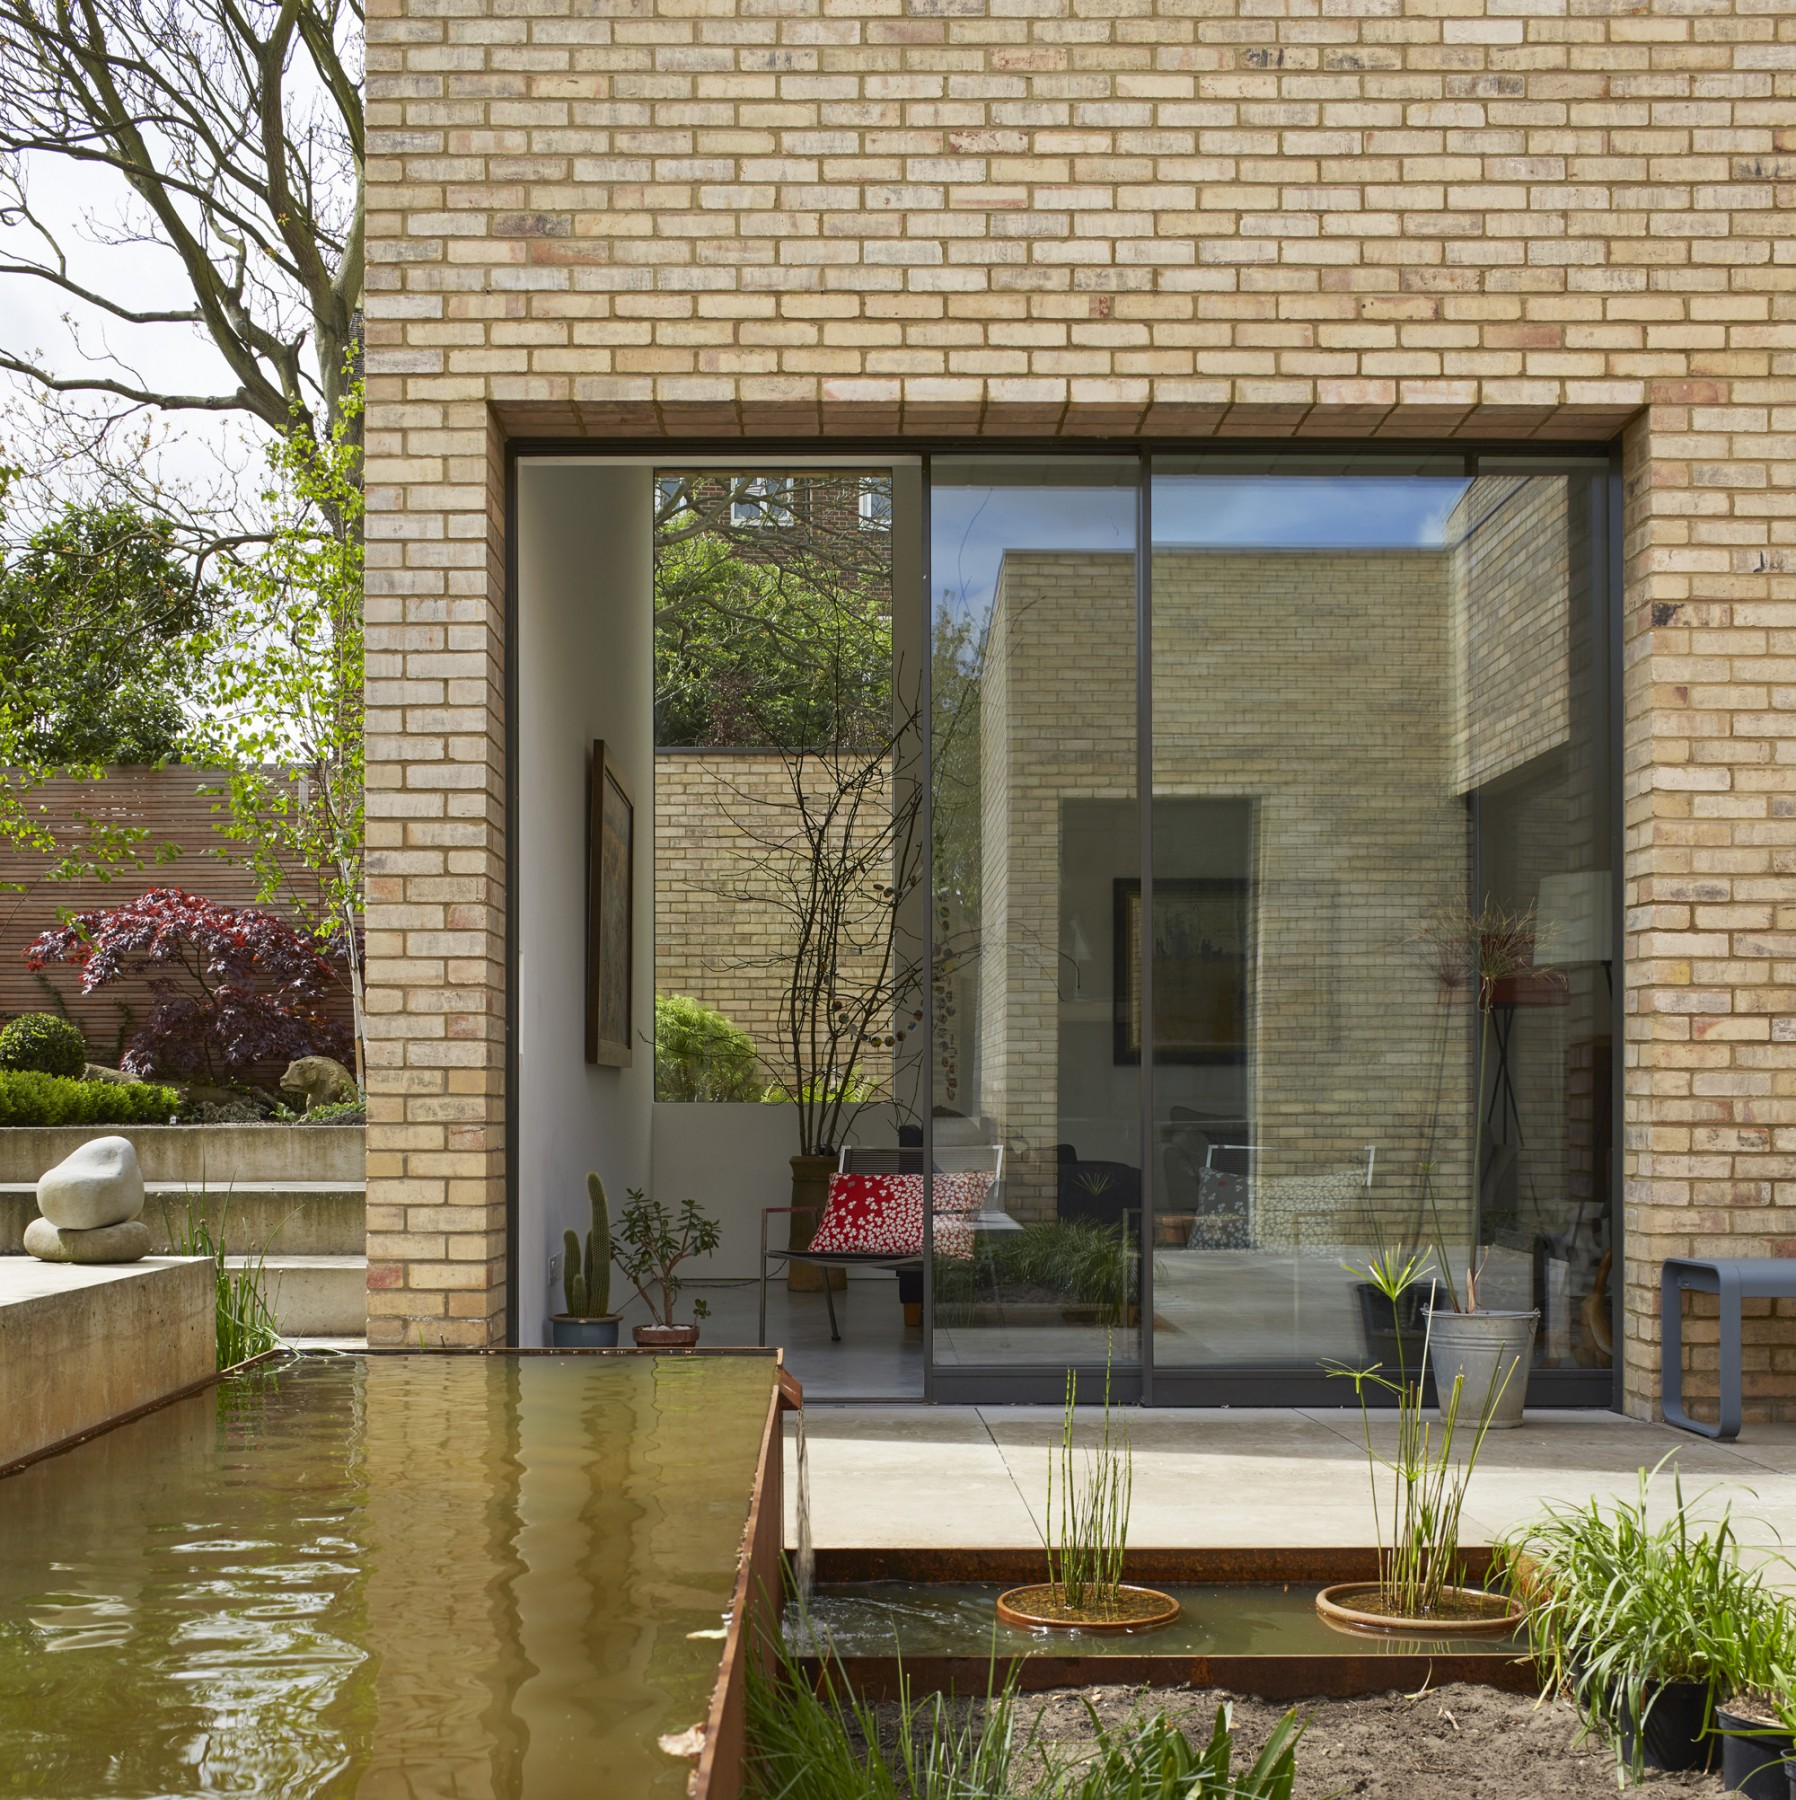 Luker-House-contemporary-modern-London-house-Barnes-Jamie-Fobert-Architects-RIBA-Award